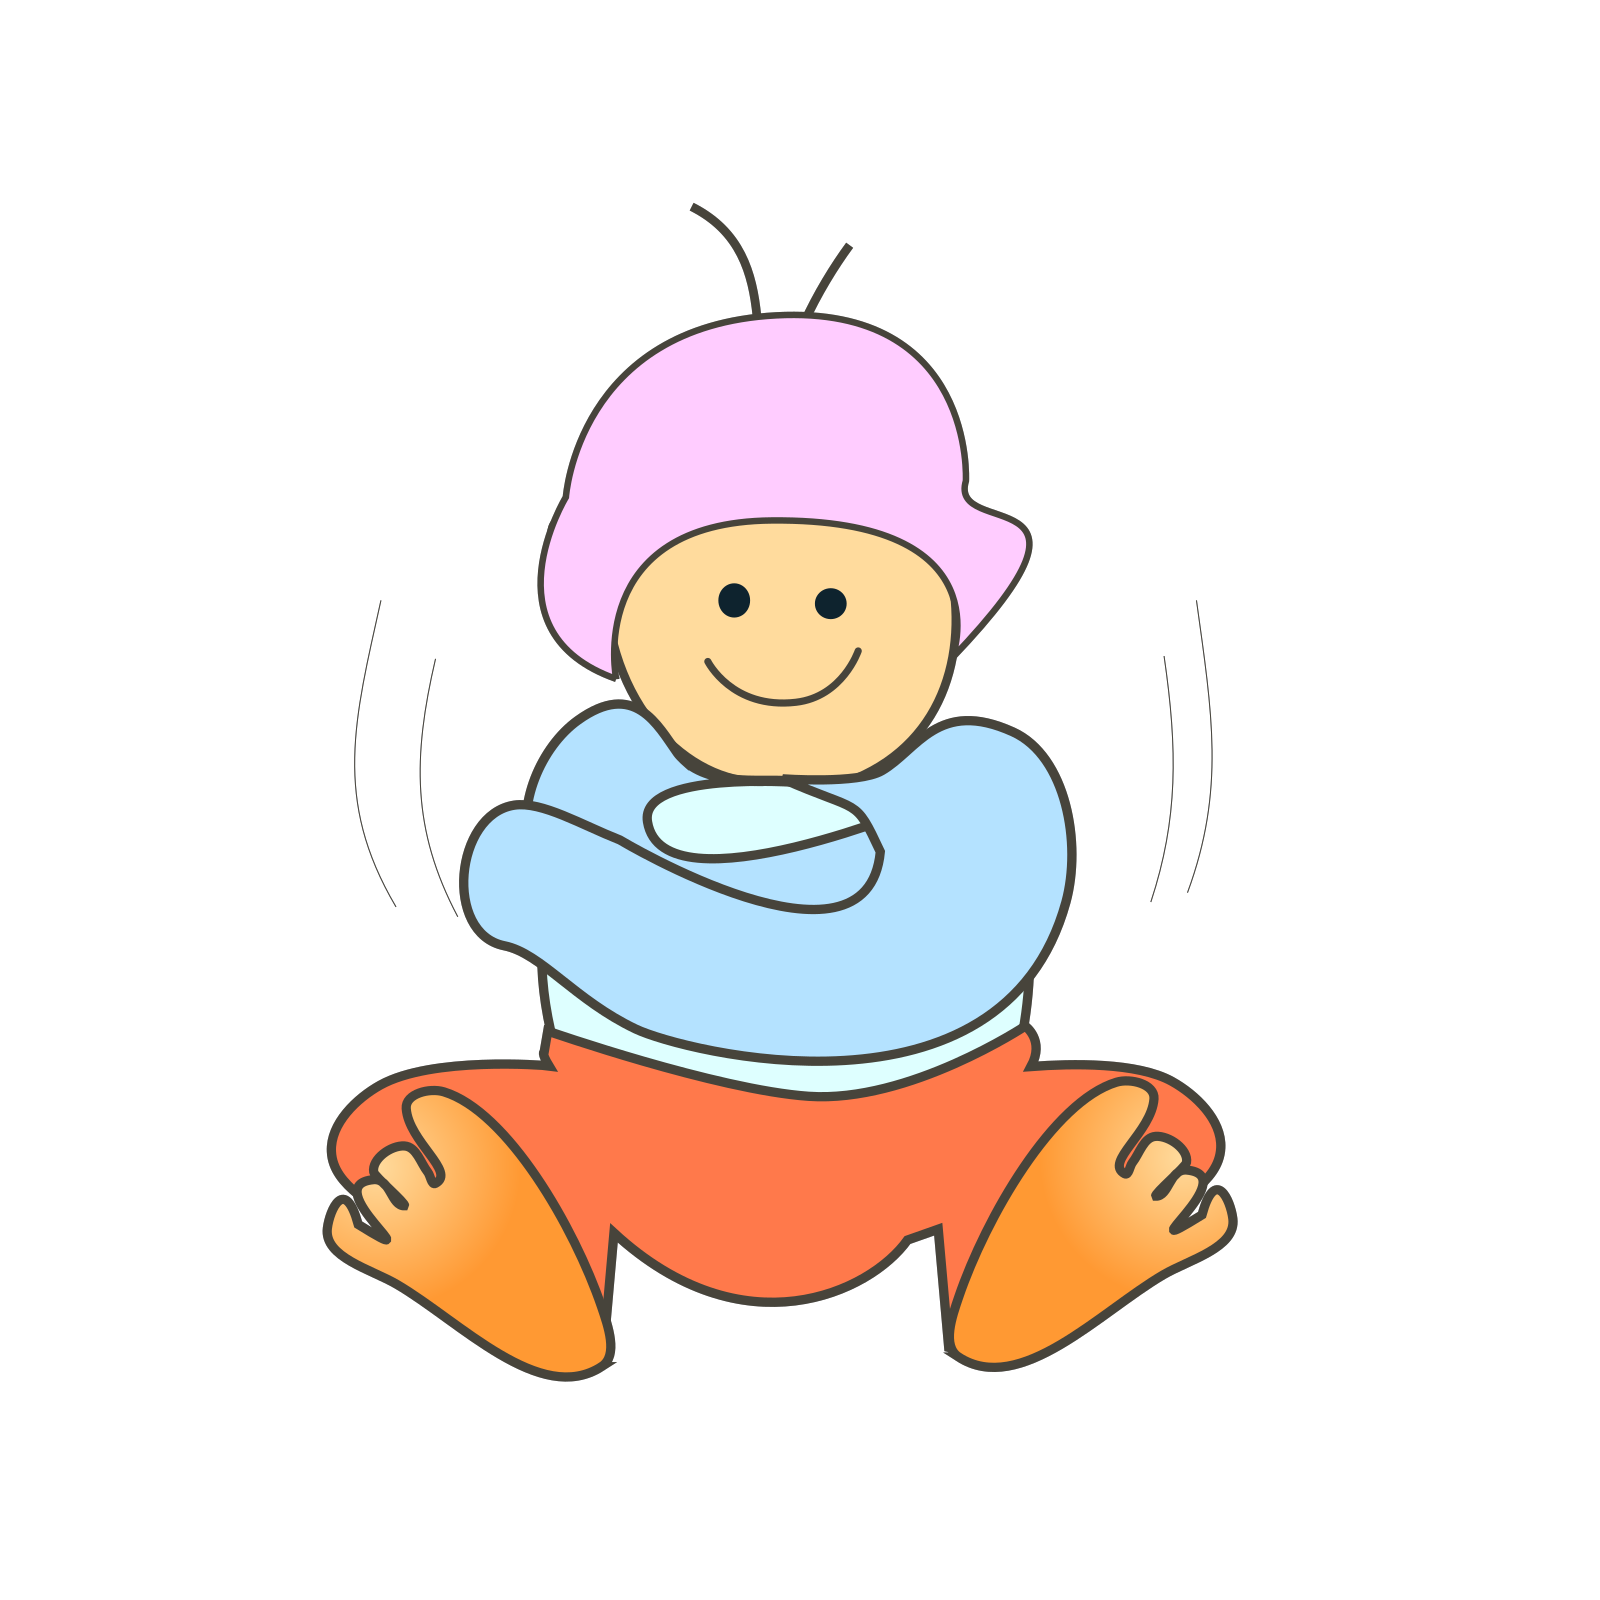 Sitting Baby Clipart Baby Boy Clip Art Image Provided - EpiCentro Festival